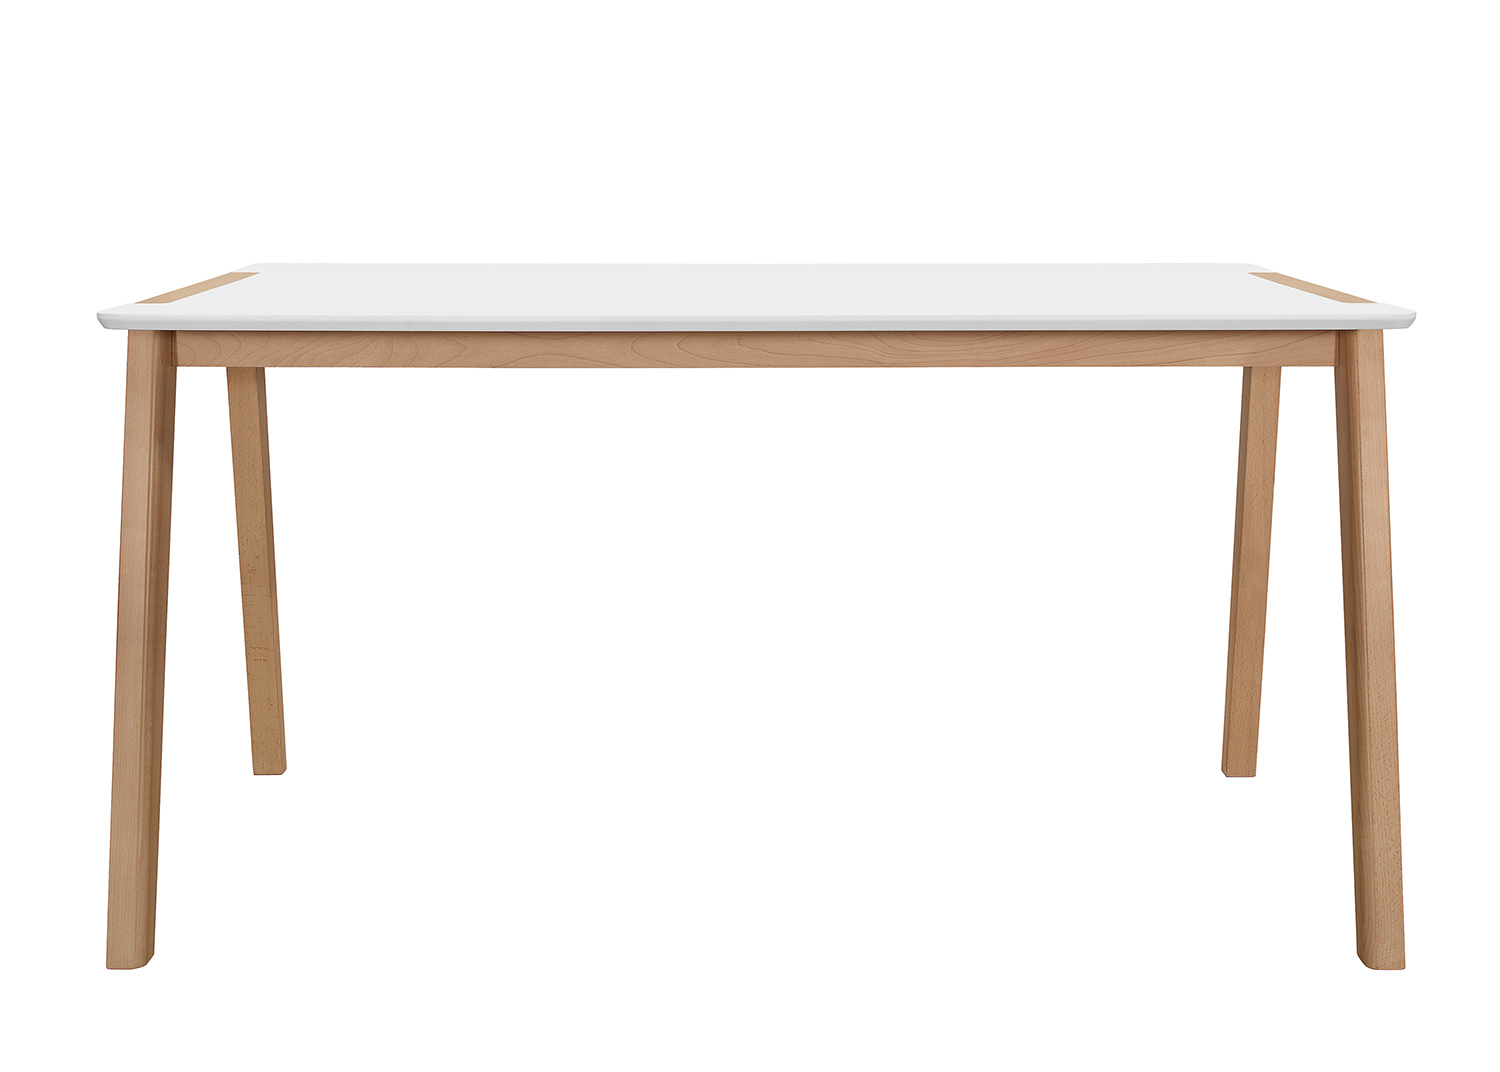 Homelegance Misa Dining Table - Natural